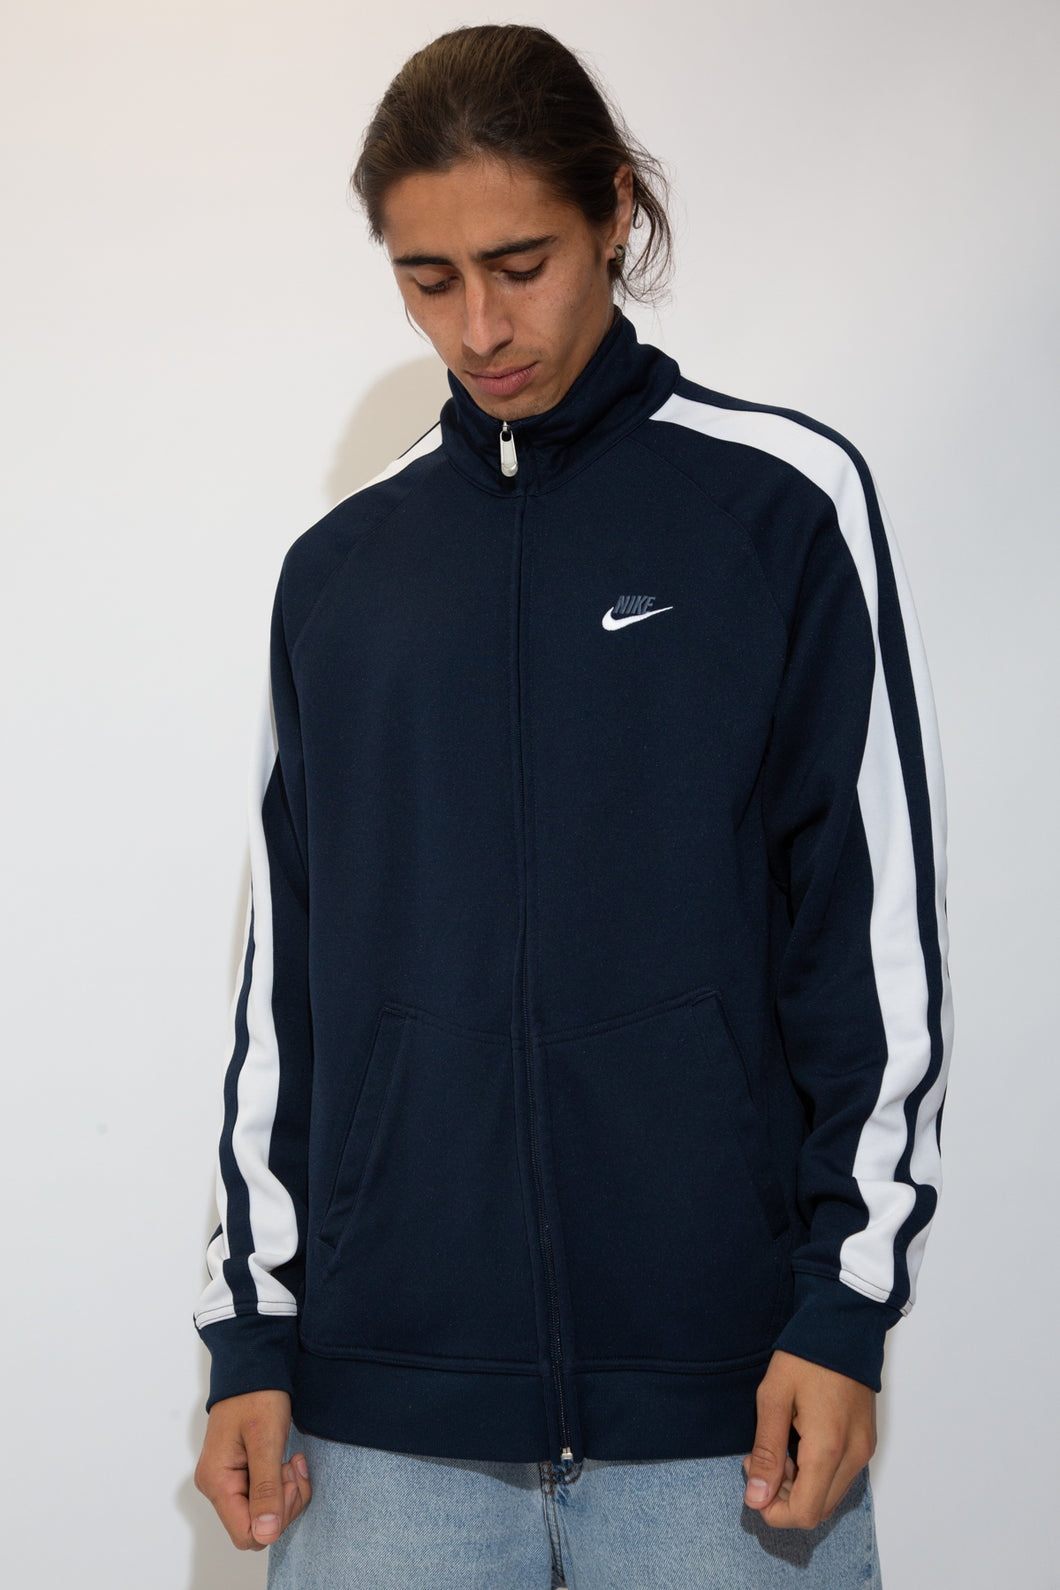 navy zip-up with embroidered nike logo and contrasting white stripes down sleeves